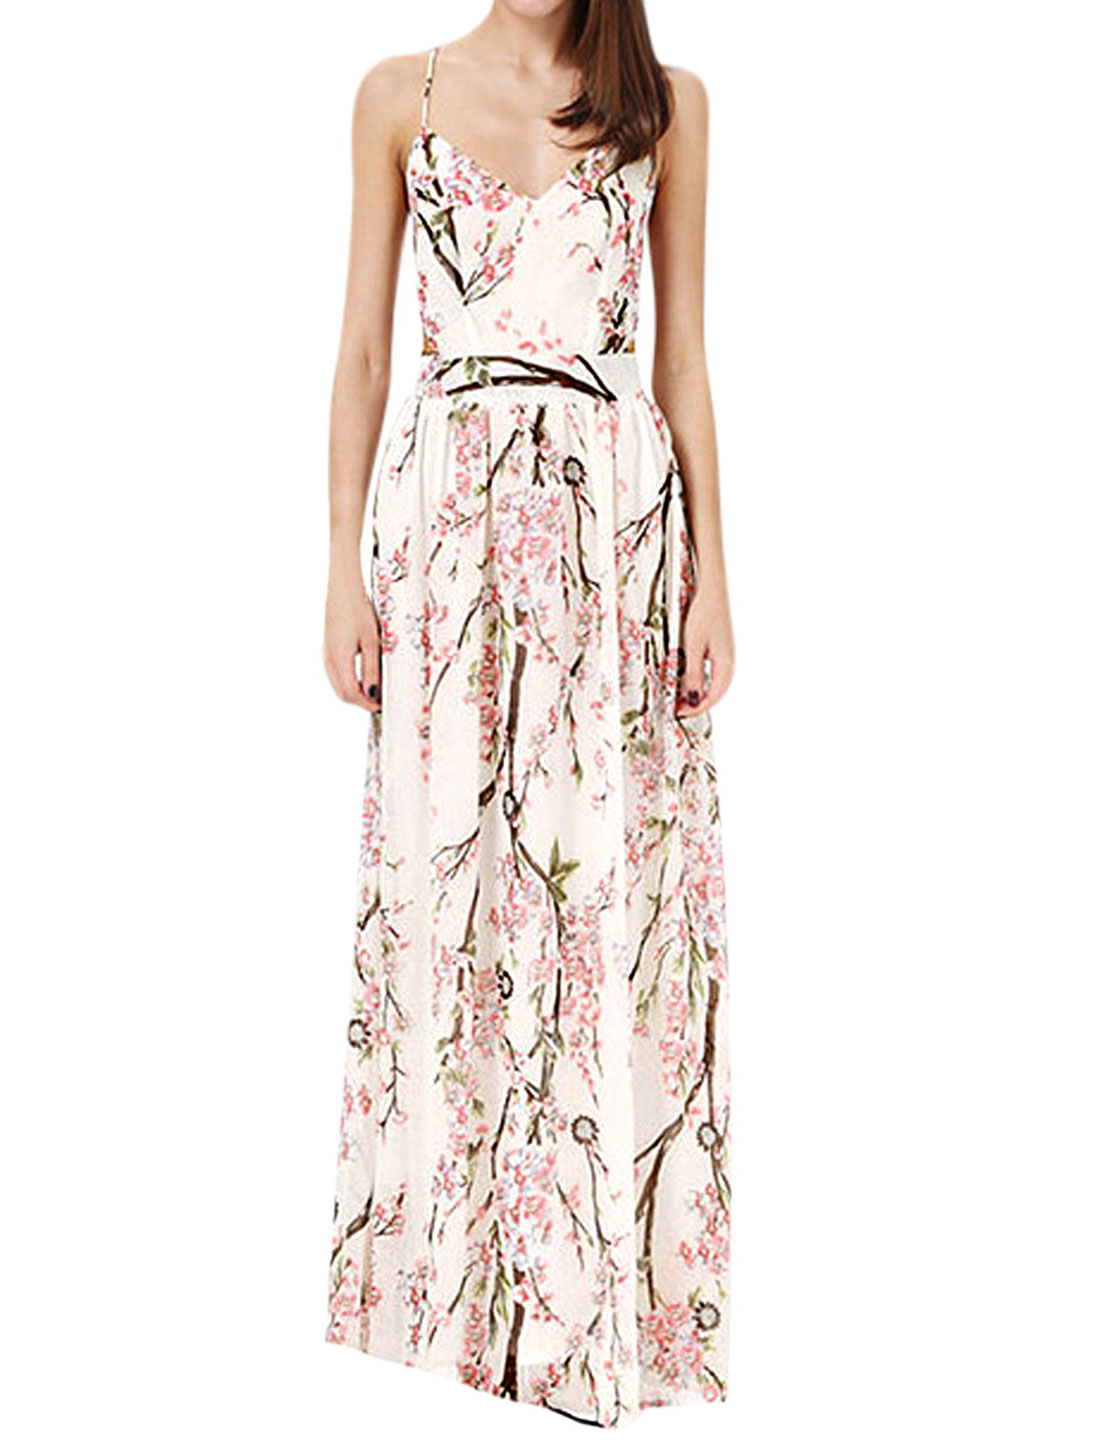 Ladies Floral Print Fully Lined Casual Maxi Dress White Pink L